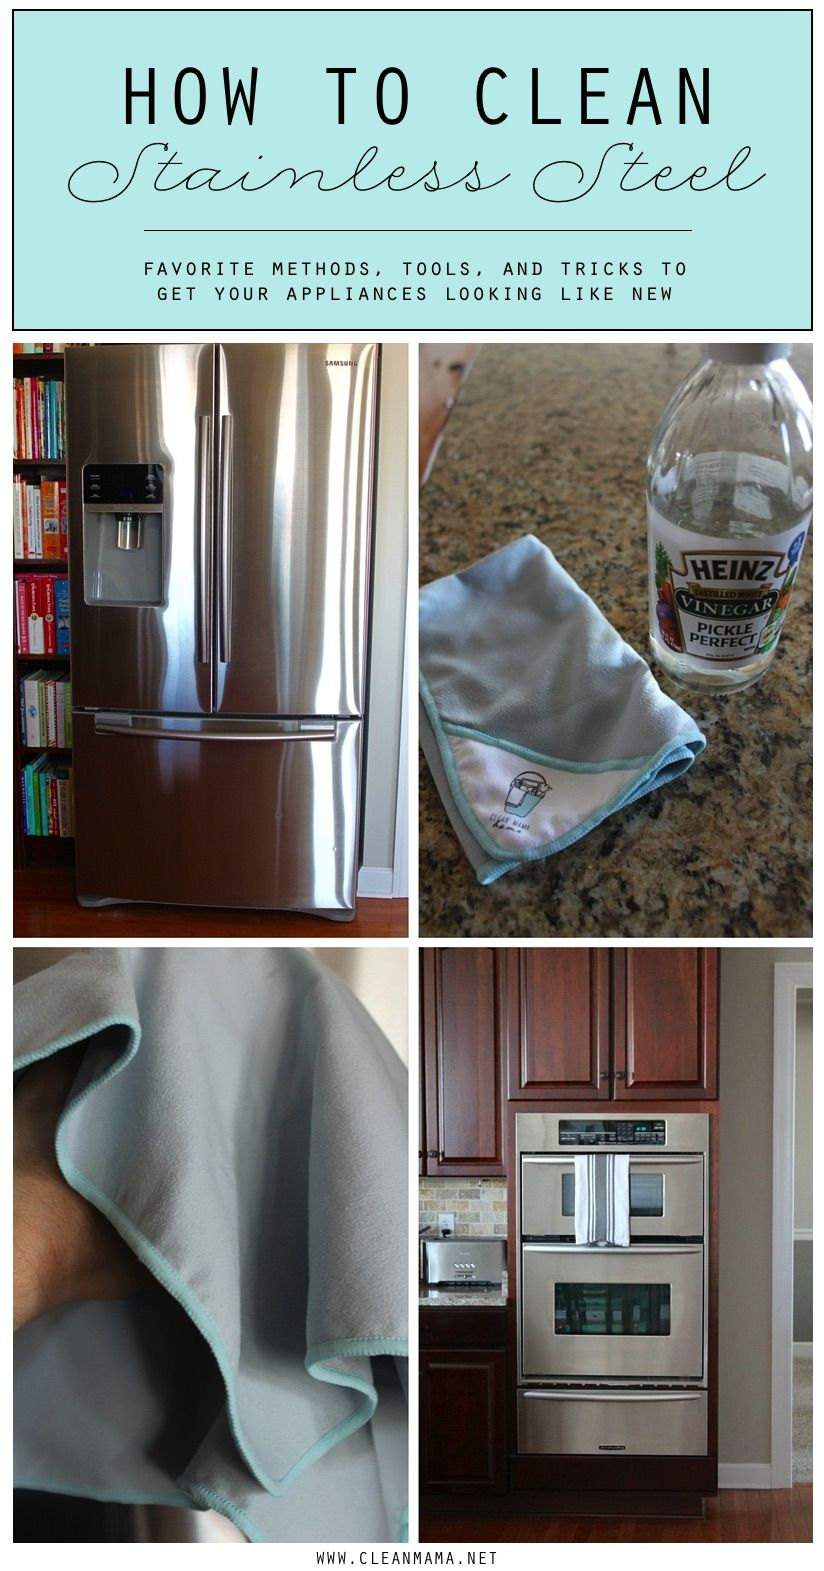 How To Clean Stainless Steel Appliances Cleaning Stainless Steel Appliances Cleaning Hacks House Cleaning Tips